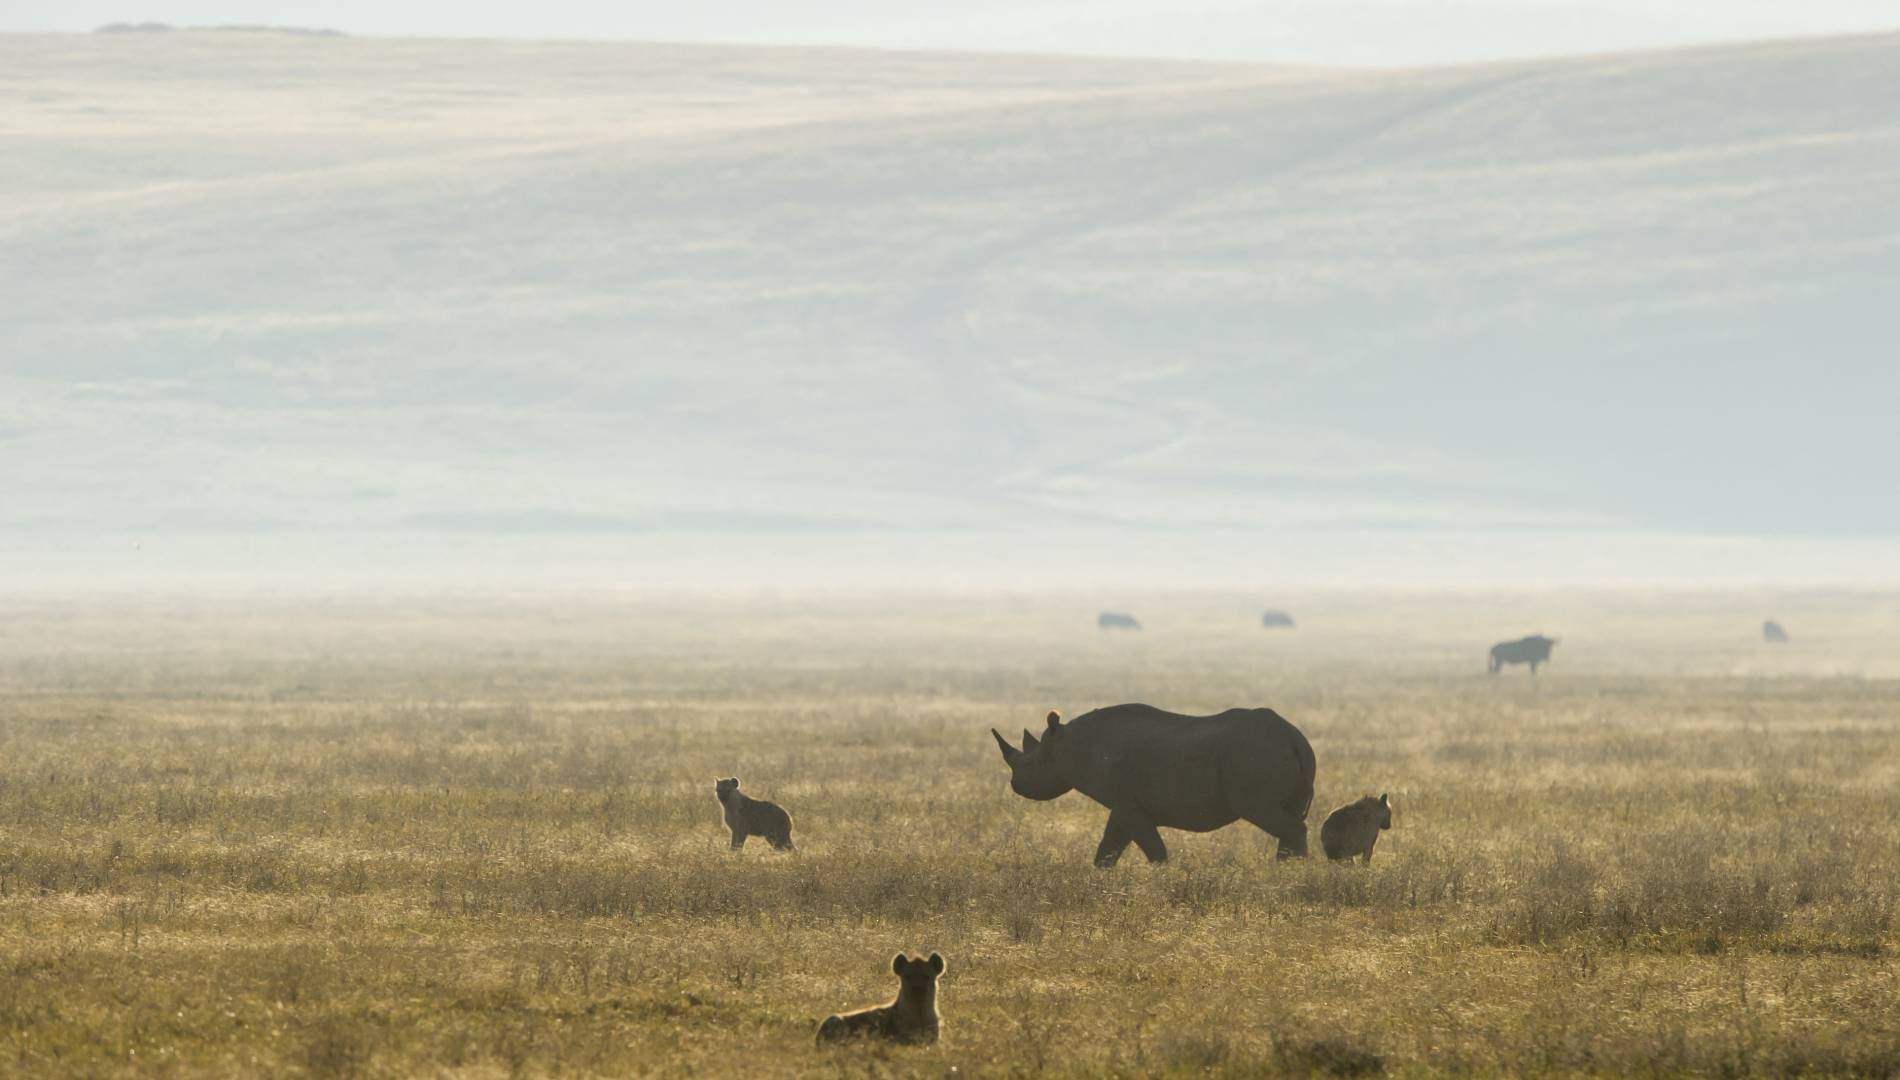 Black rhino Hyena in Ngorongoro